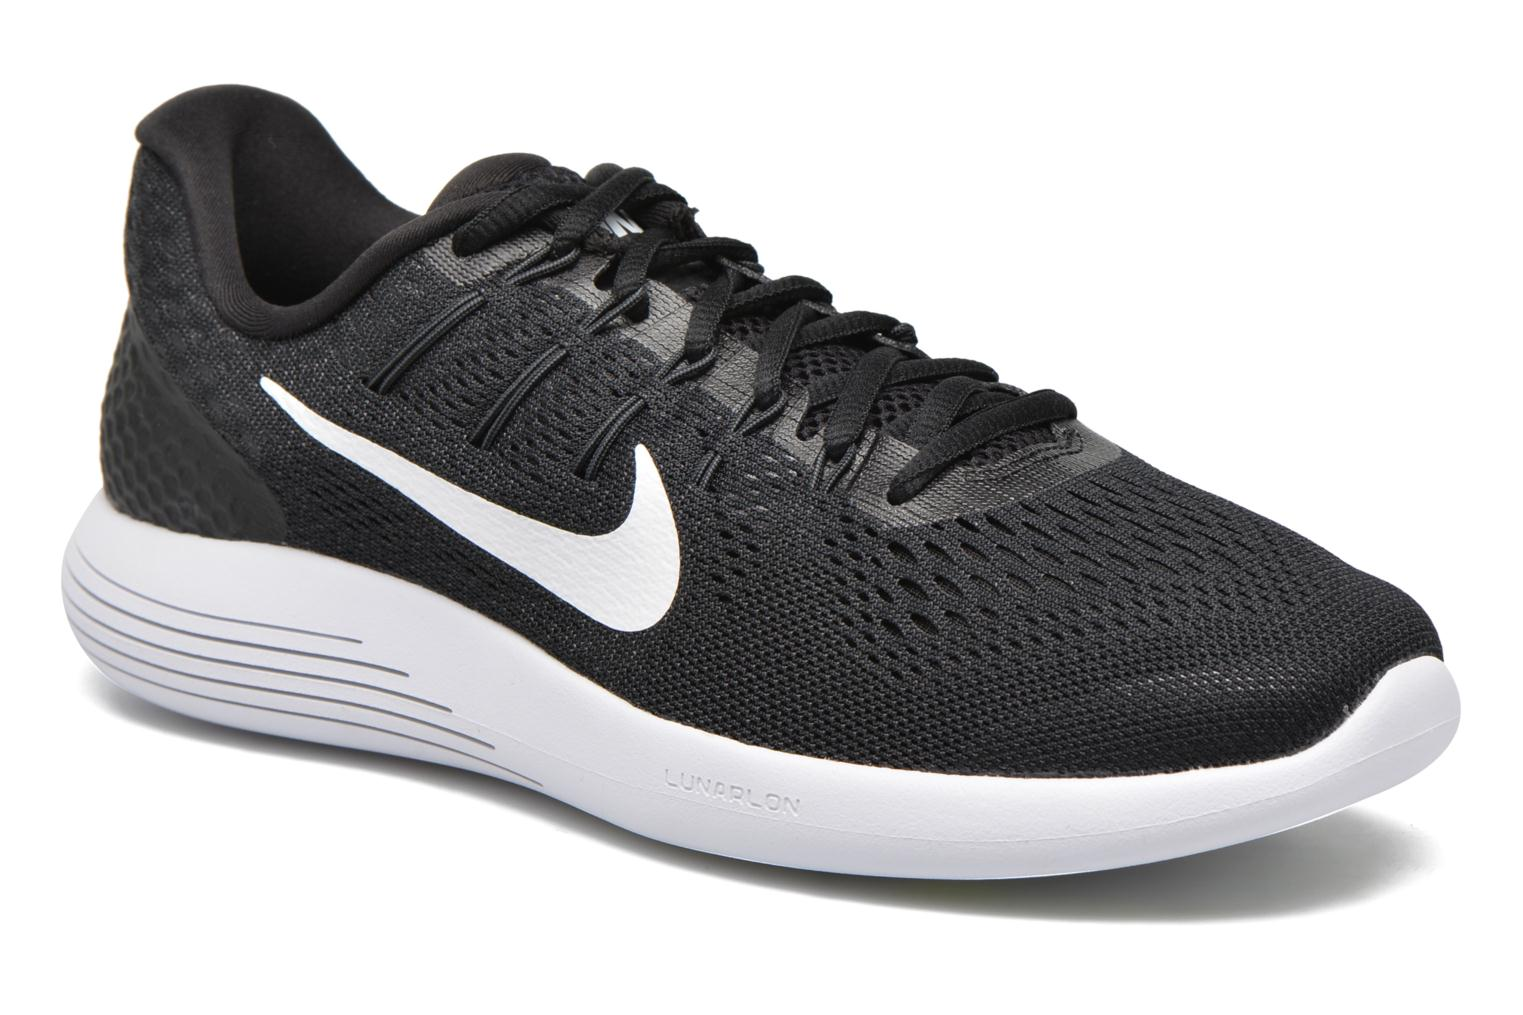 Nike Lunarglide 8 Black/white-anthracite